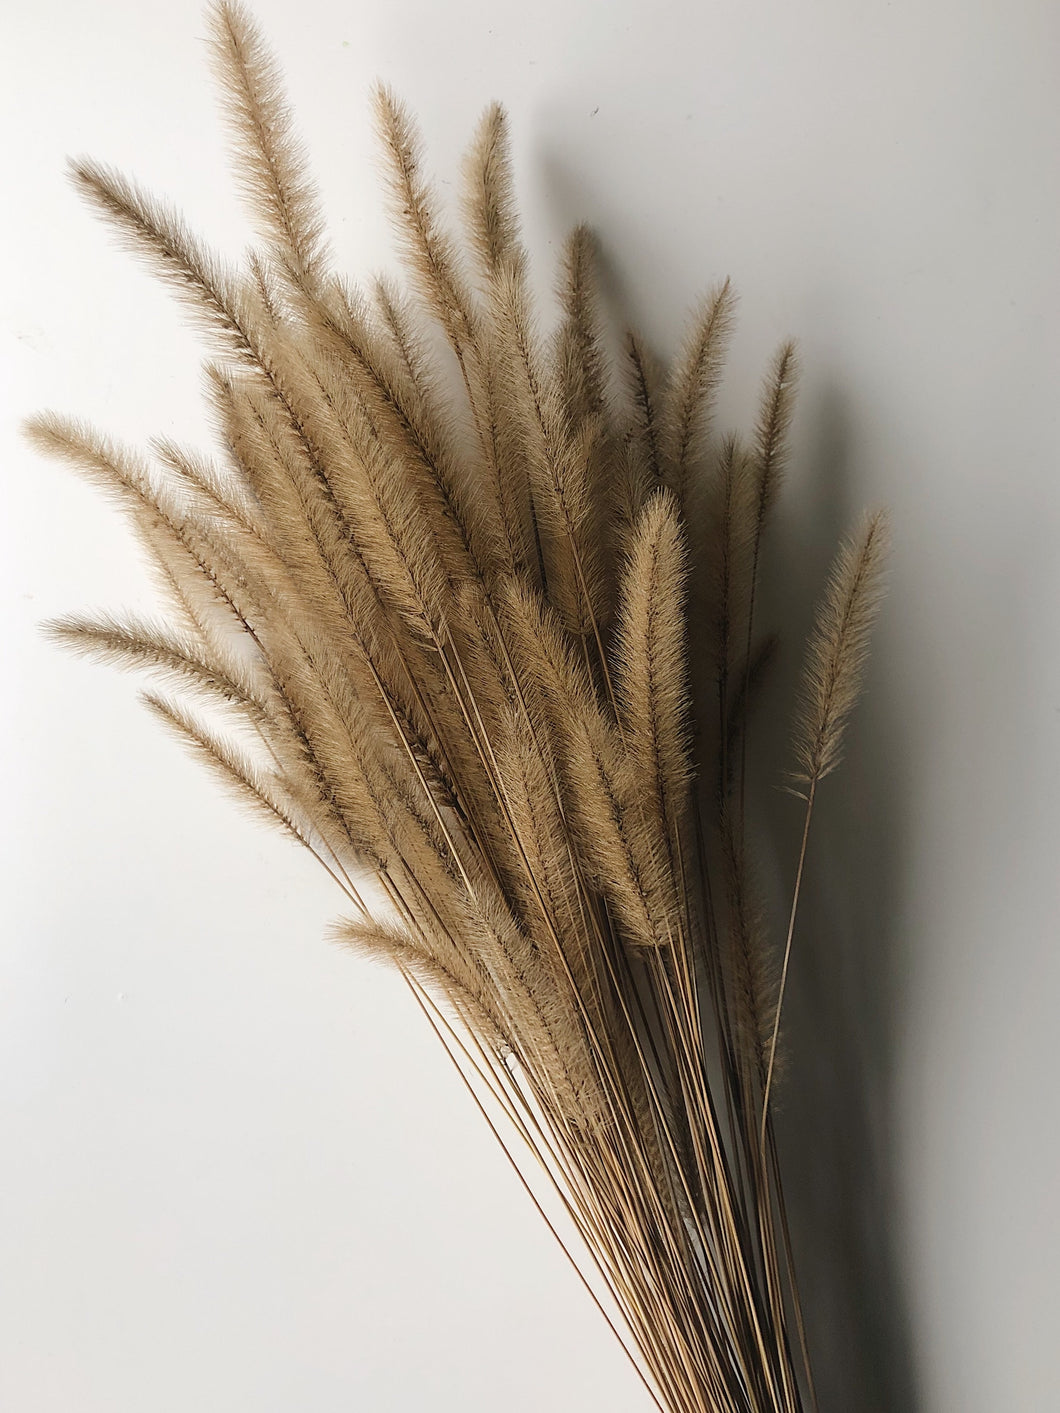 Naturally Dried Foxtail Flowers